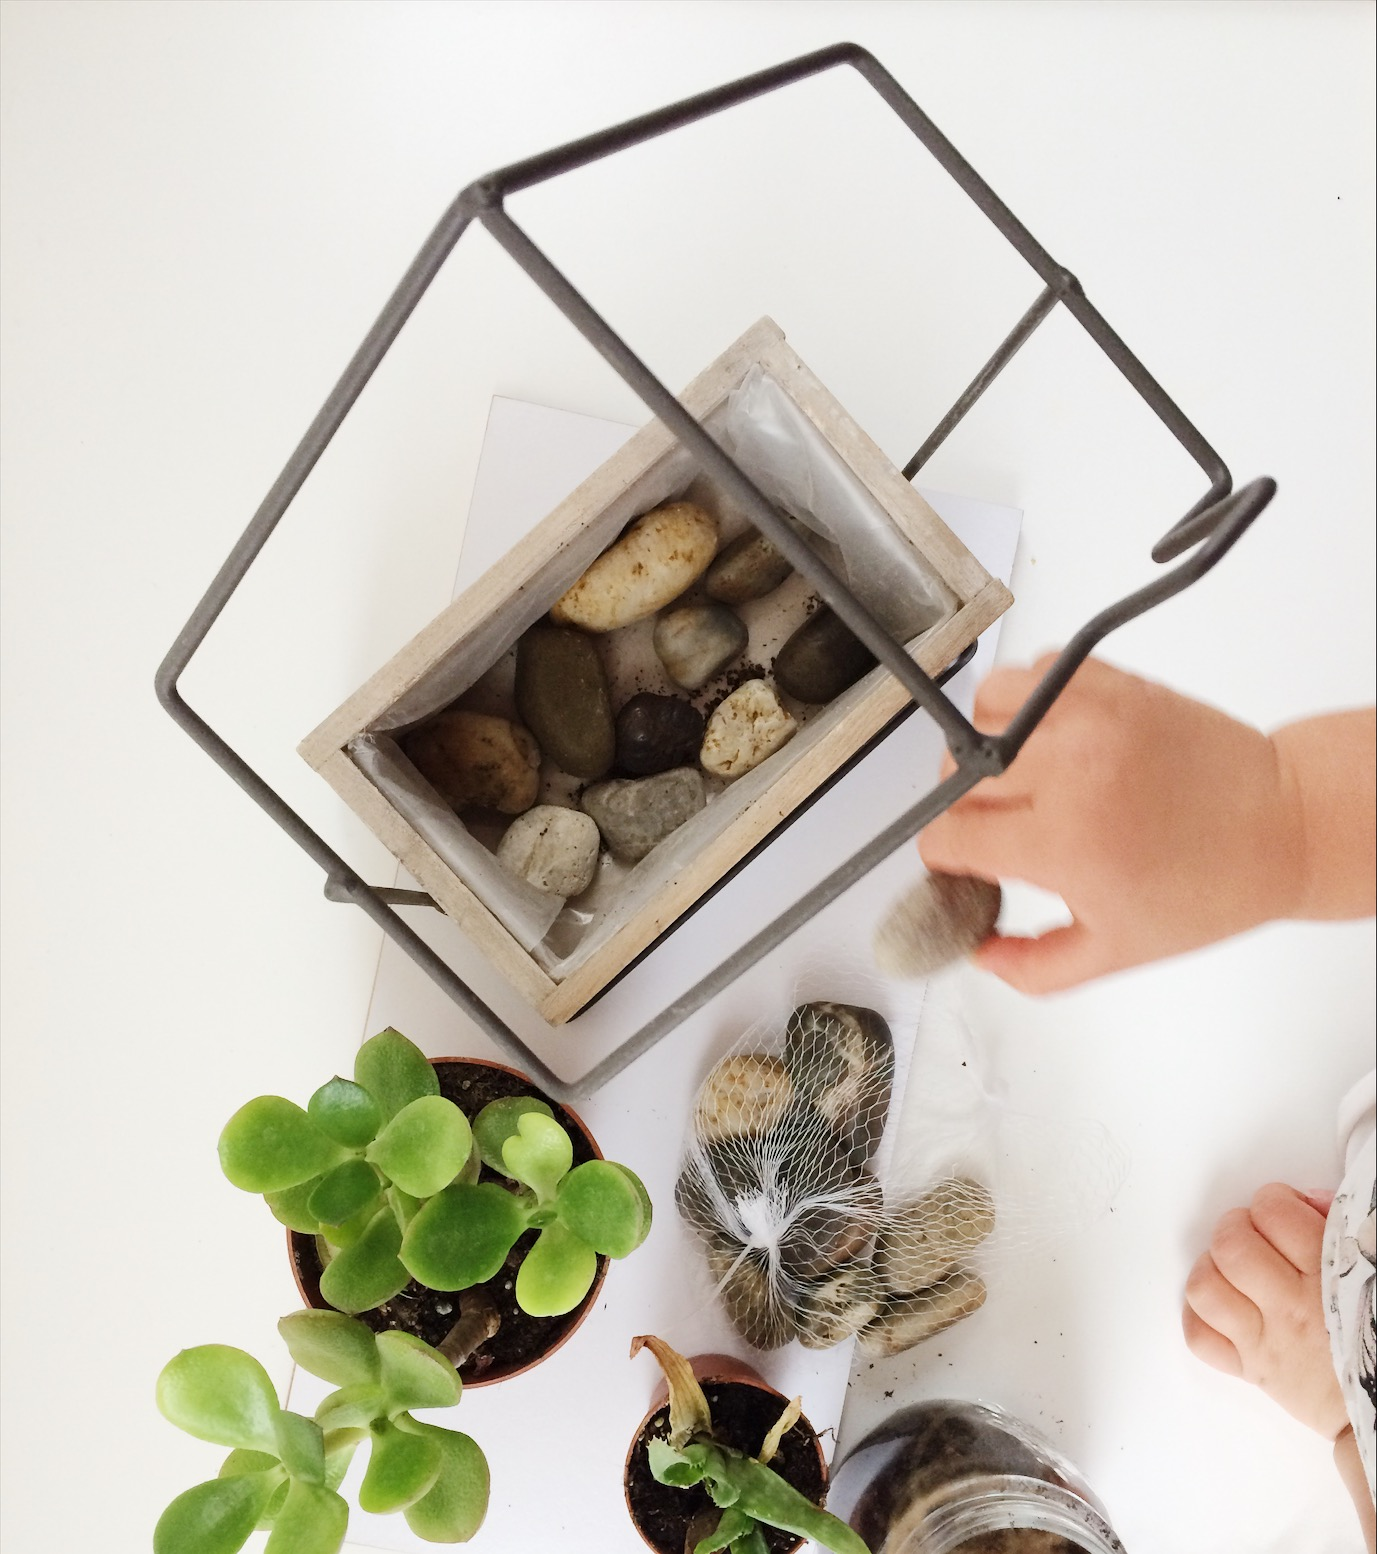 child putting small rocks into flower pot in the shape of a house